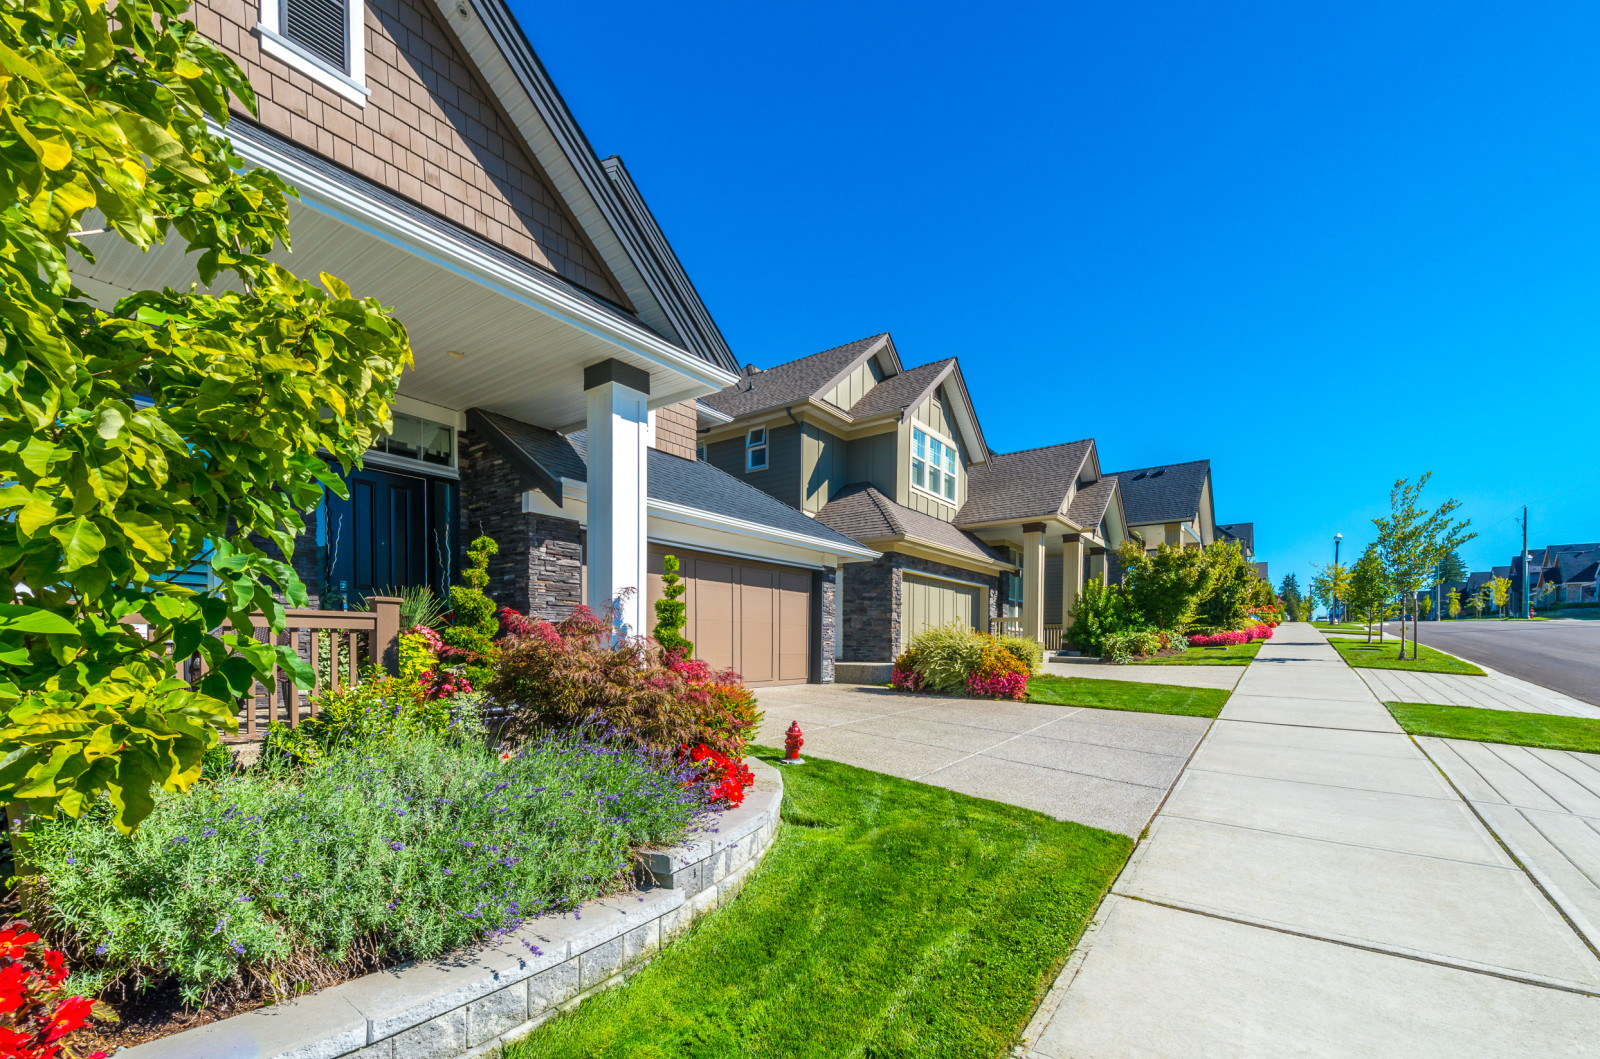 Suburban Homes Still Feel Recession S Pinch Zillow Research